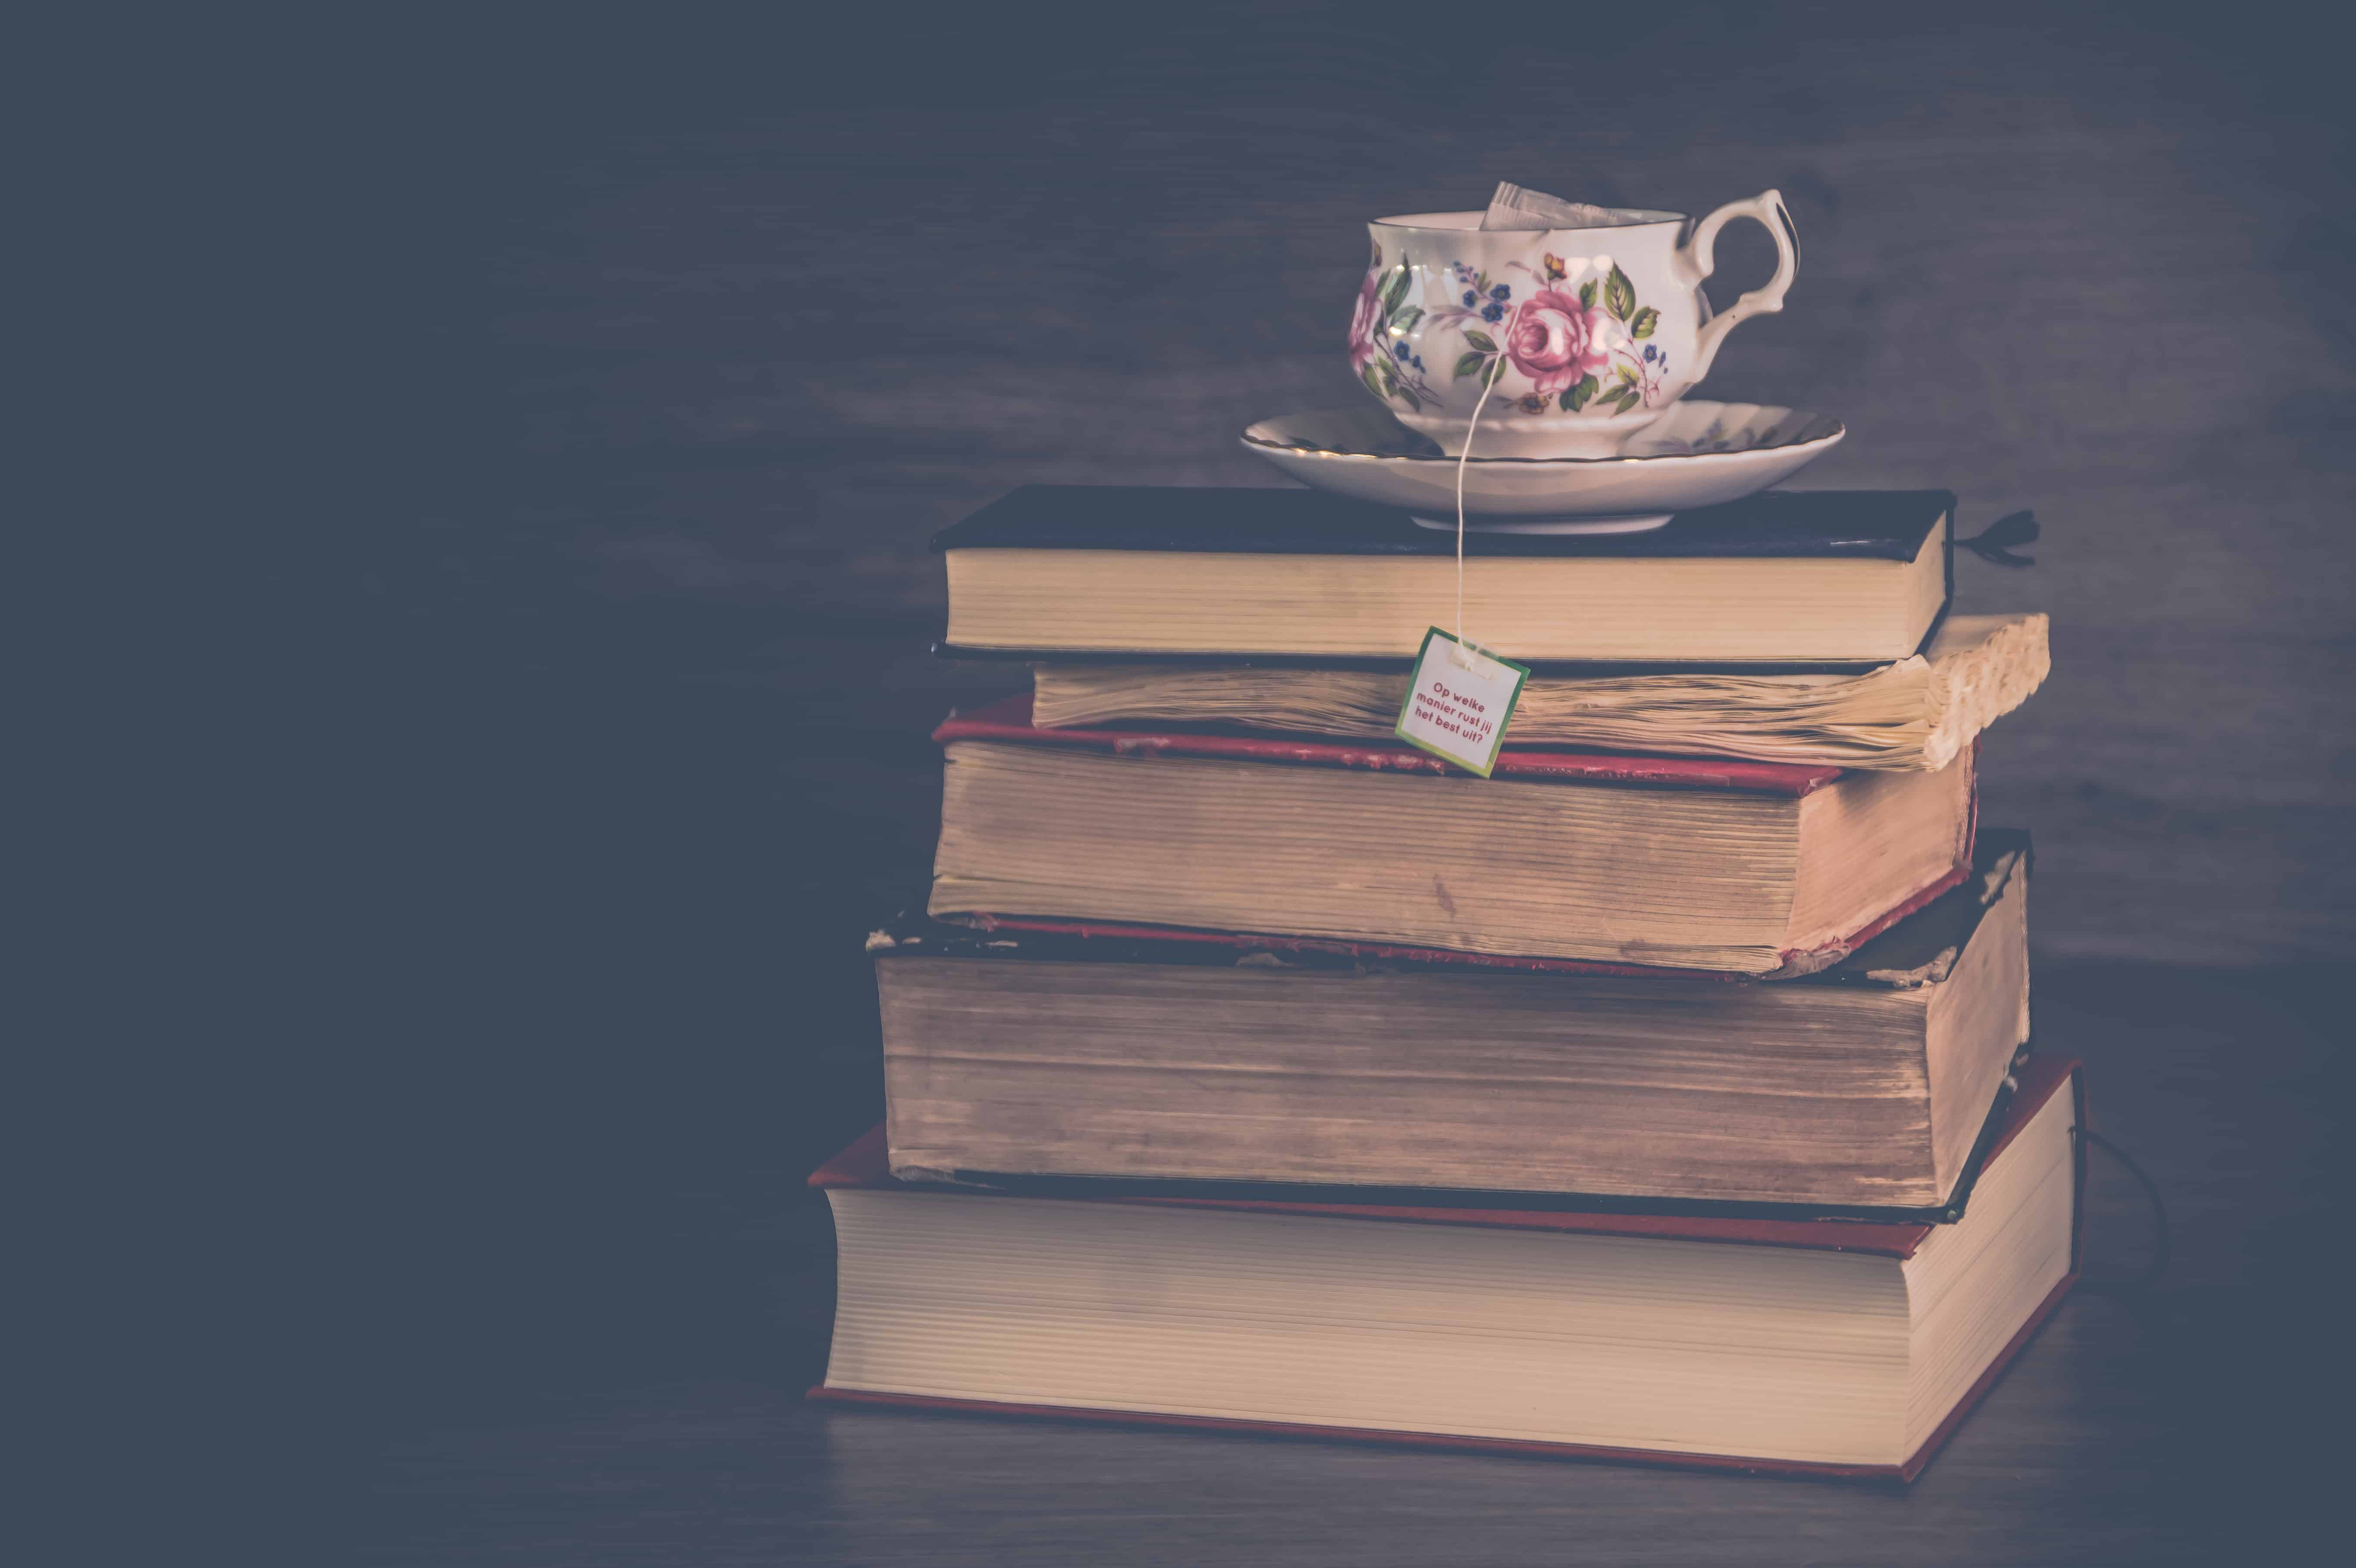 Cup of tea sitting on old books